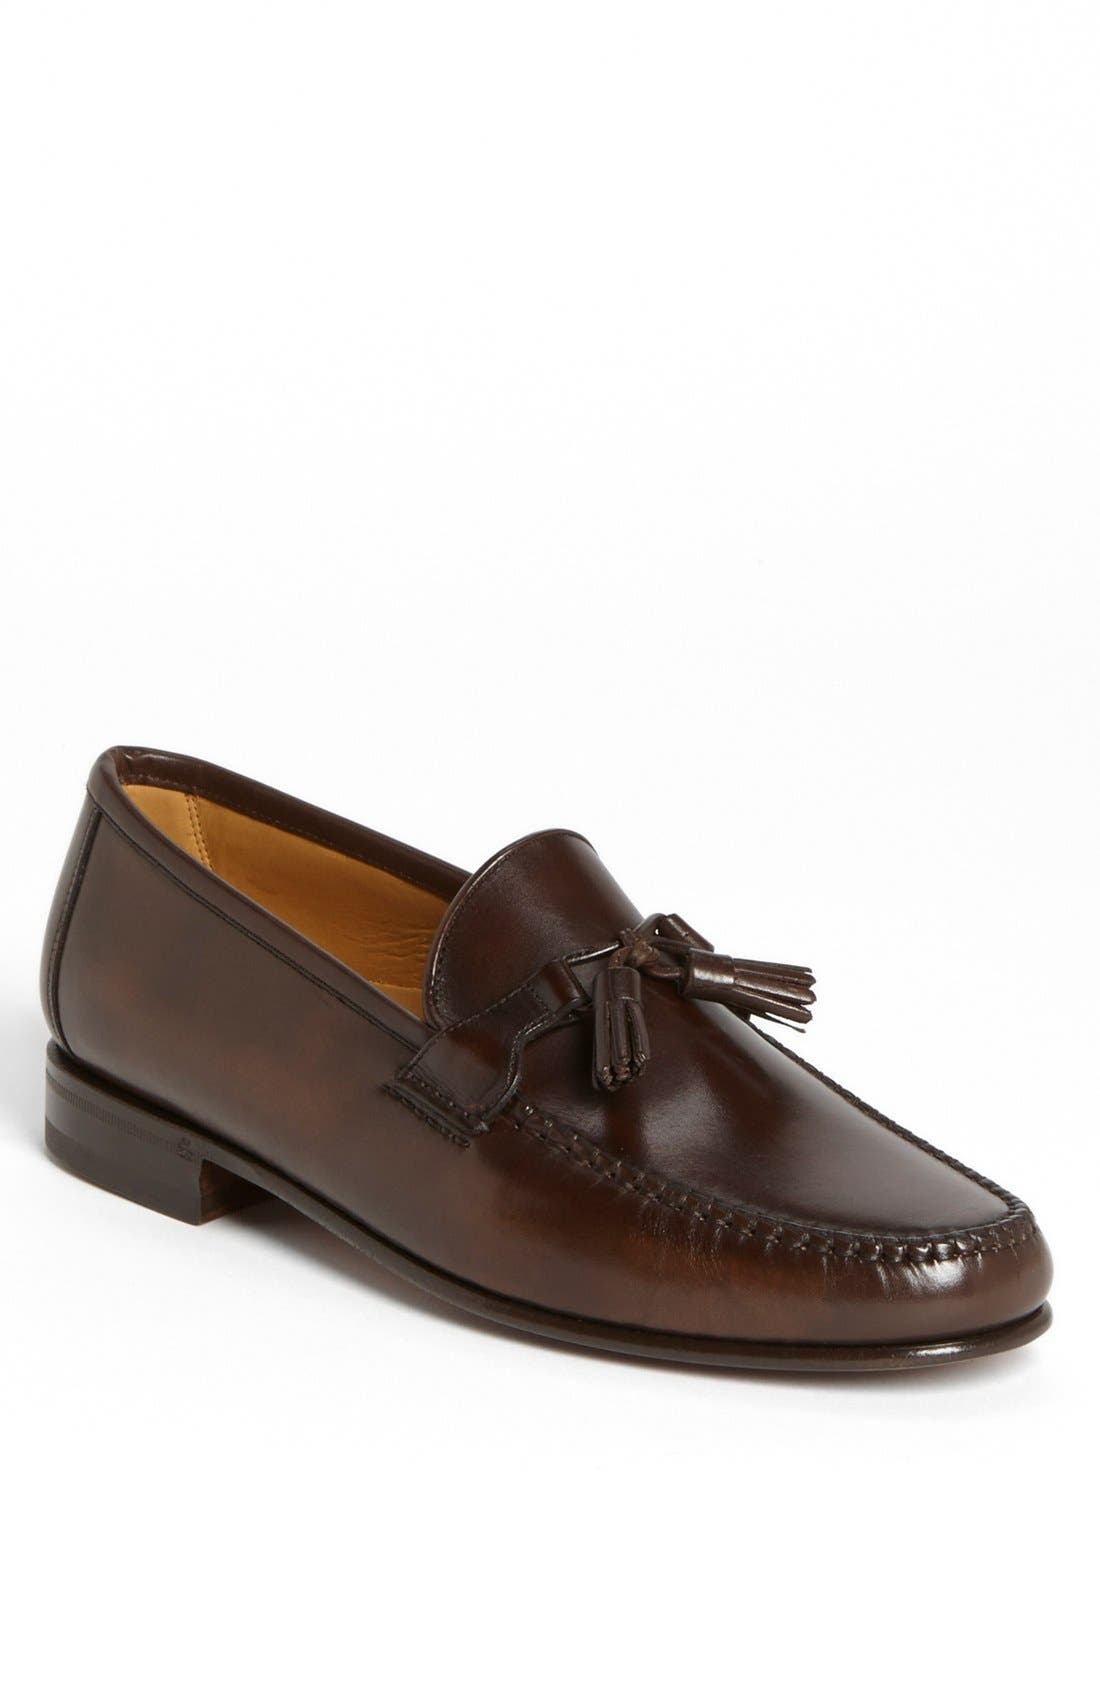 Main Image - Allen Edmonds 'Urbino' Tassel Loafer (Men)